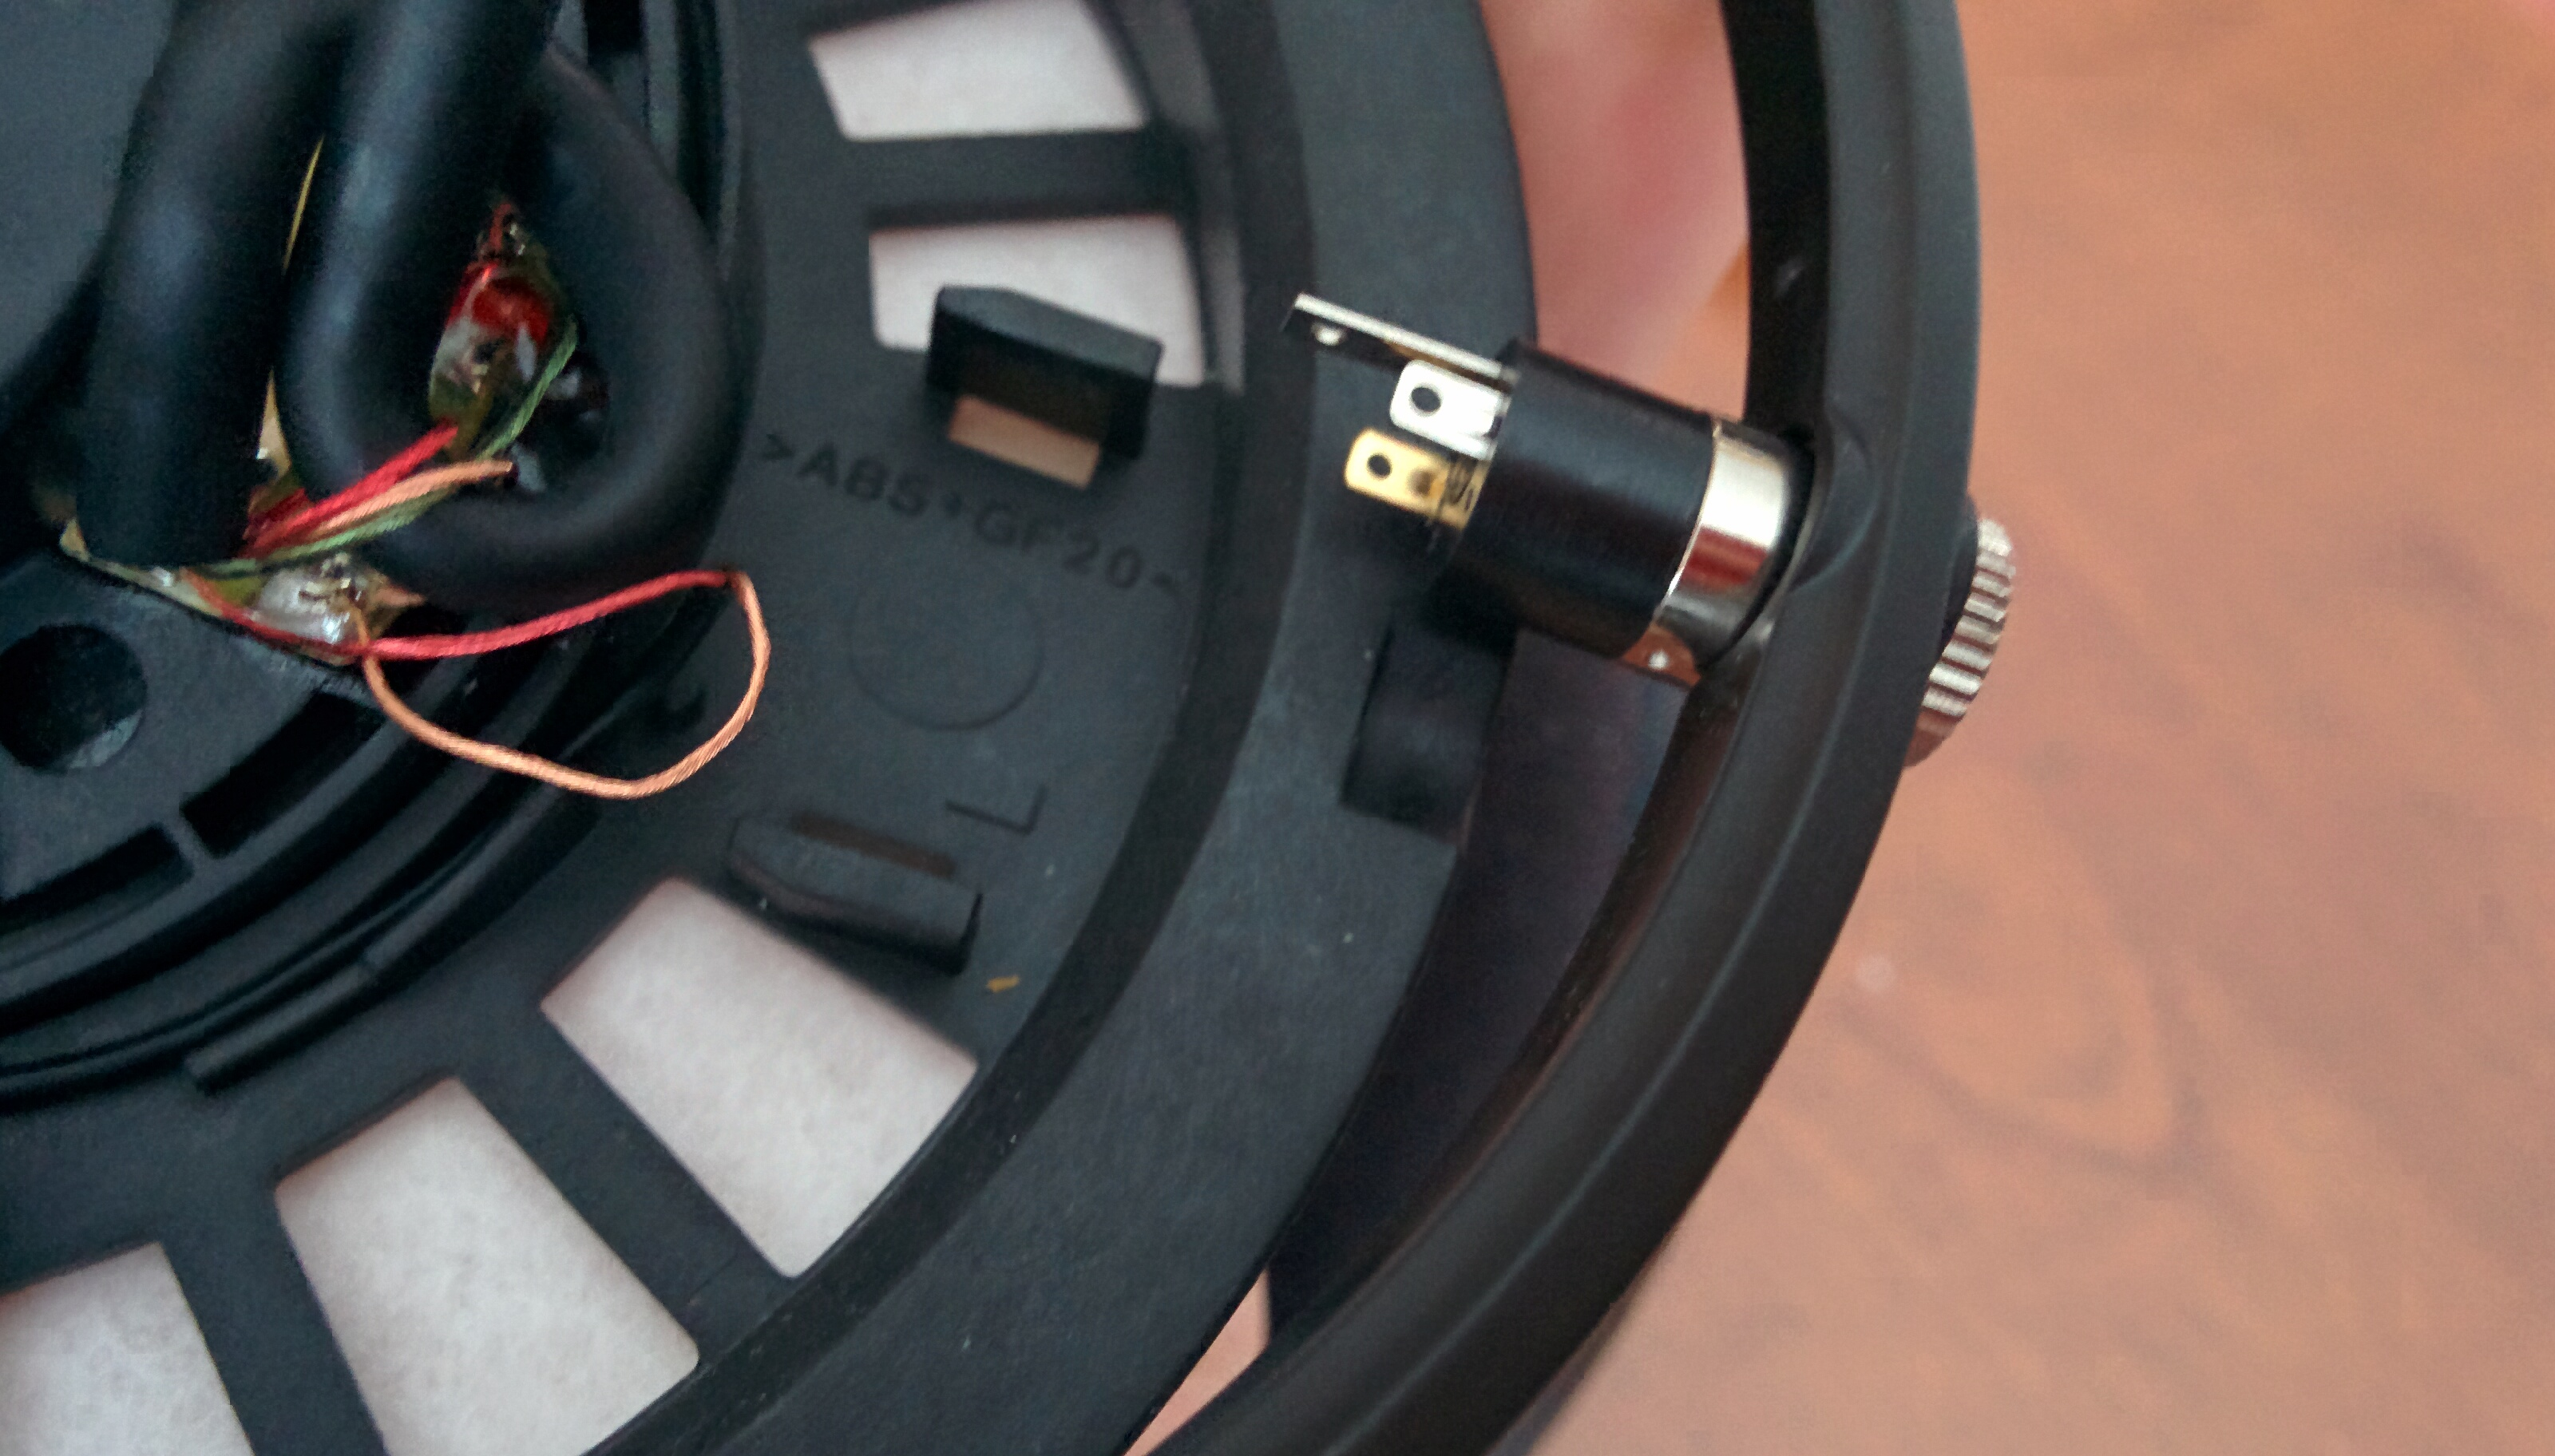 How To Ath Ad900x Detachable Cable Mod Adxxxx And What Not Audio Technica Wiring Diagrams Img 20160212 162803